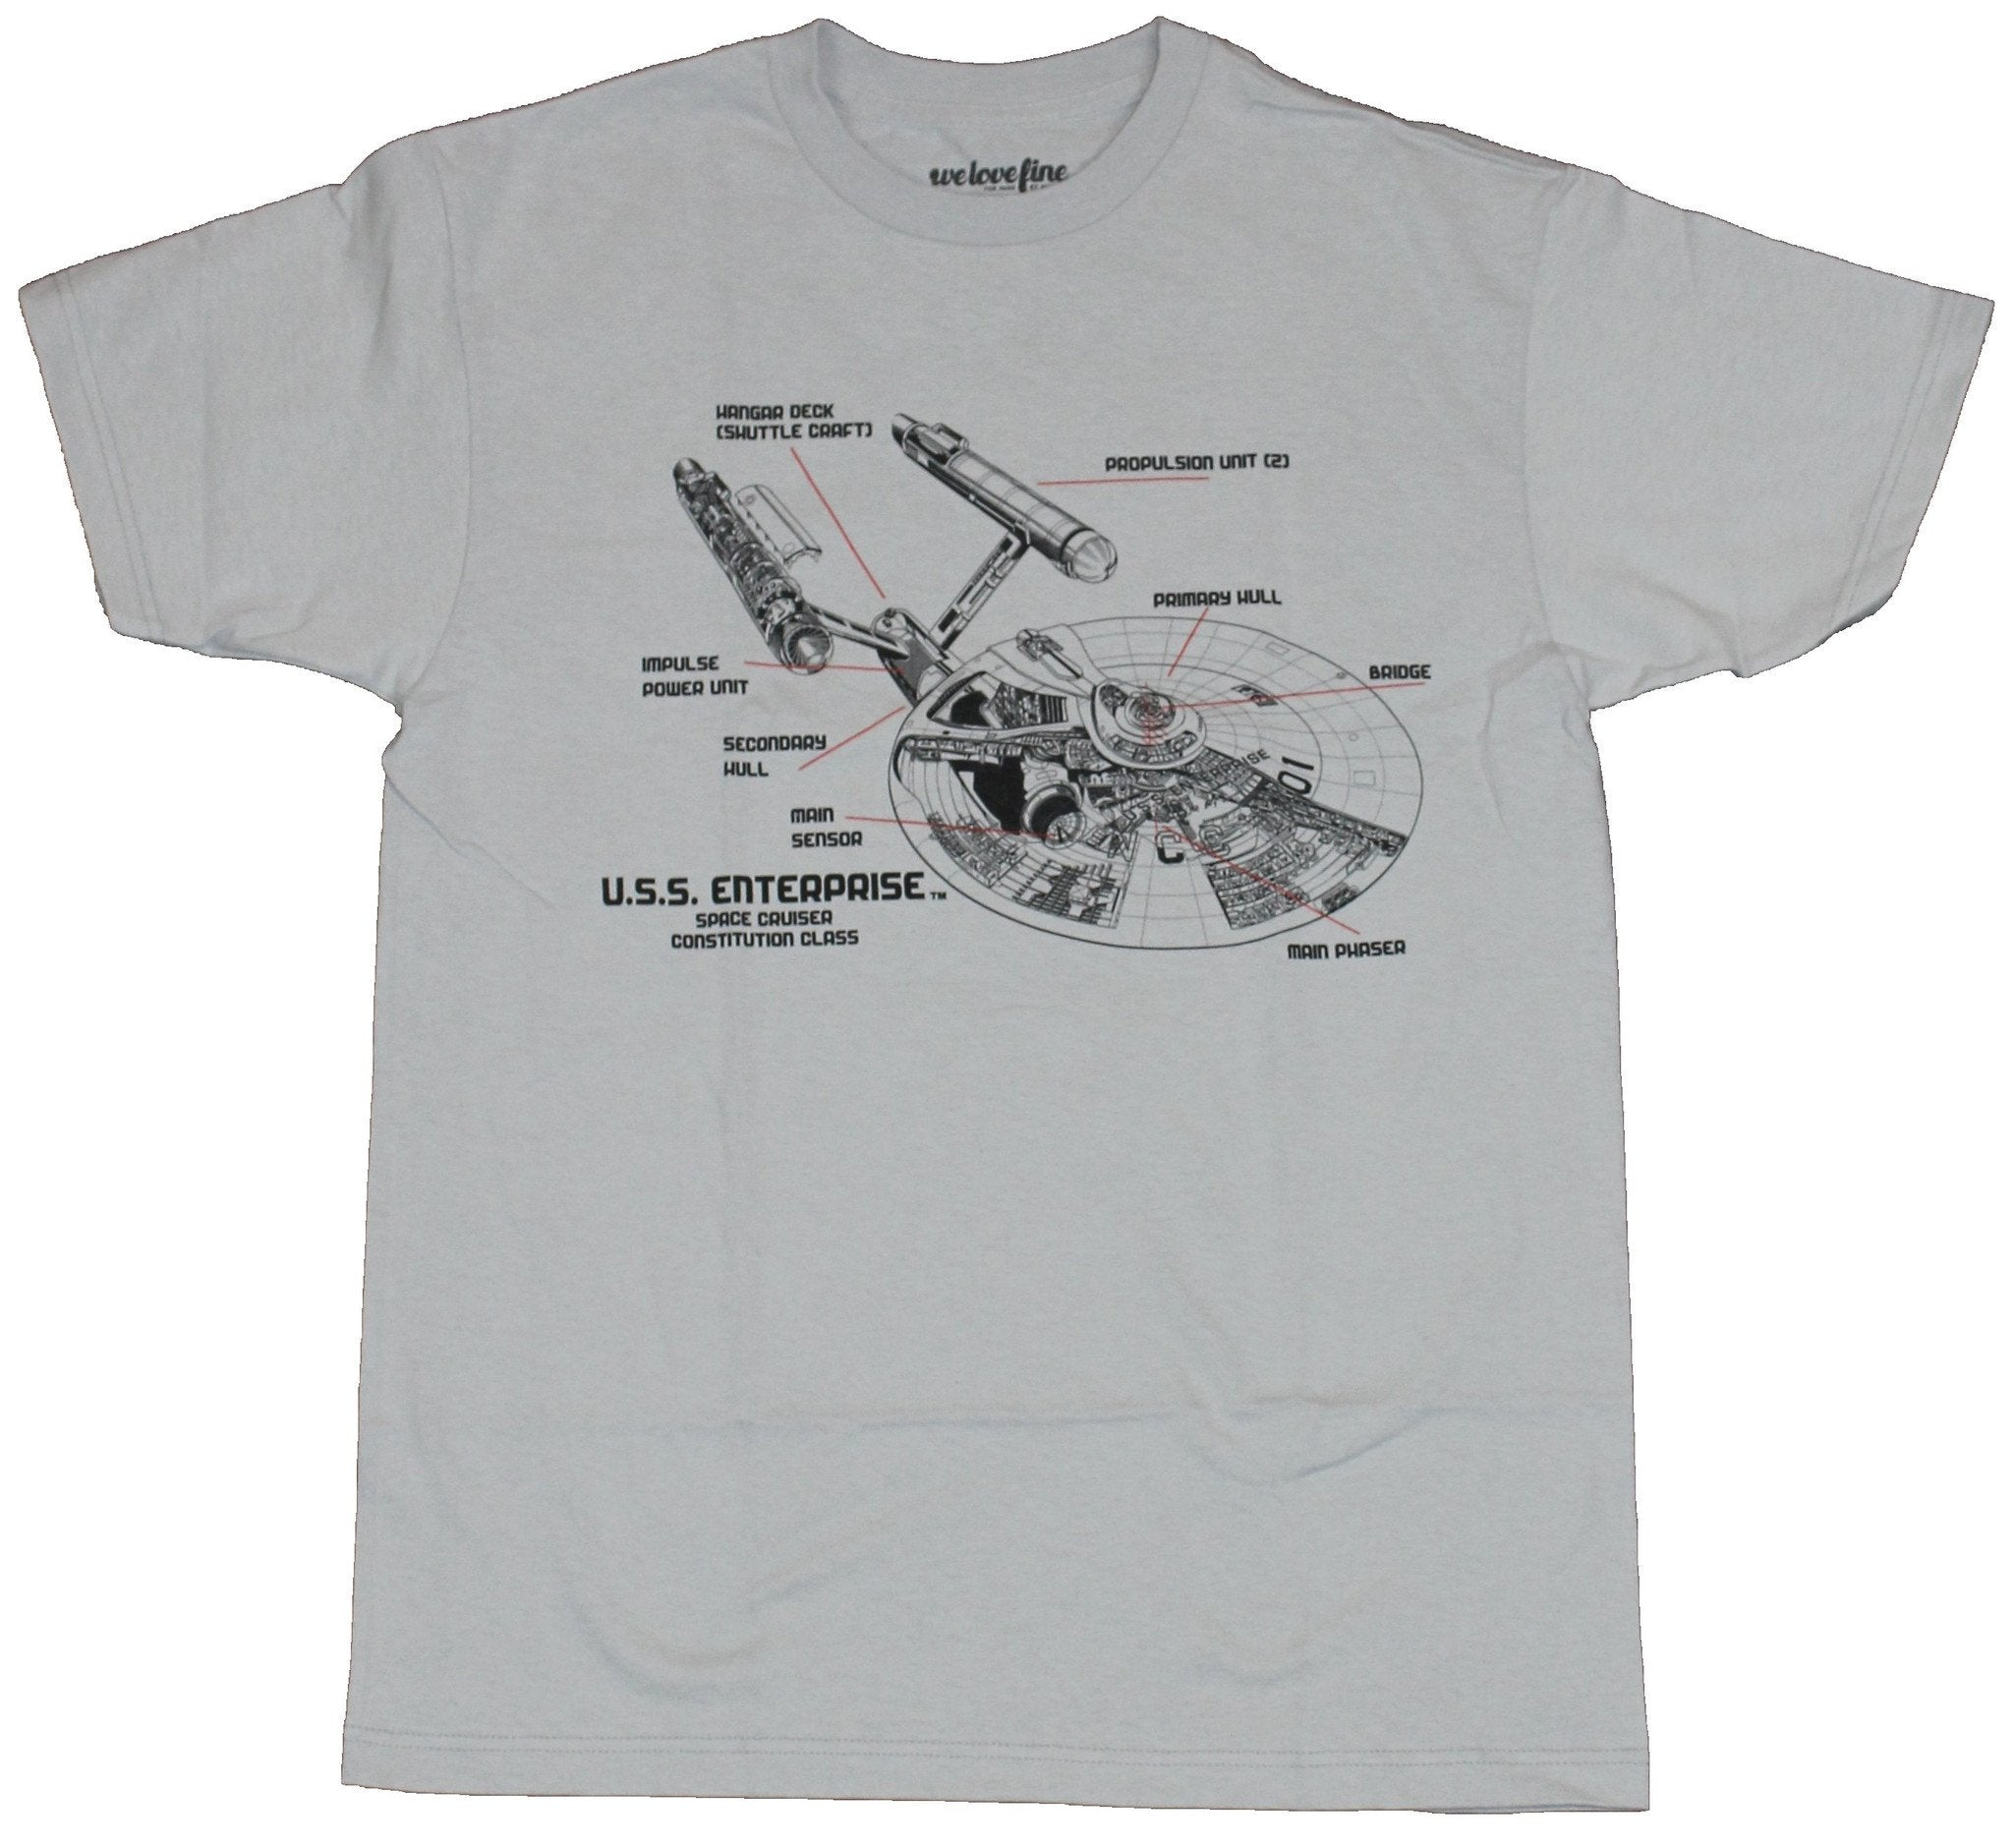 Star Trek Mens T-Shirt - U.S.S. Enterprise Cut Away Design Image